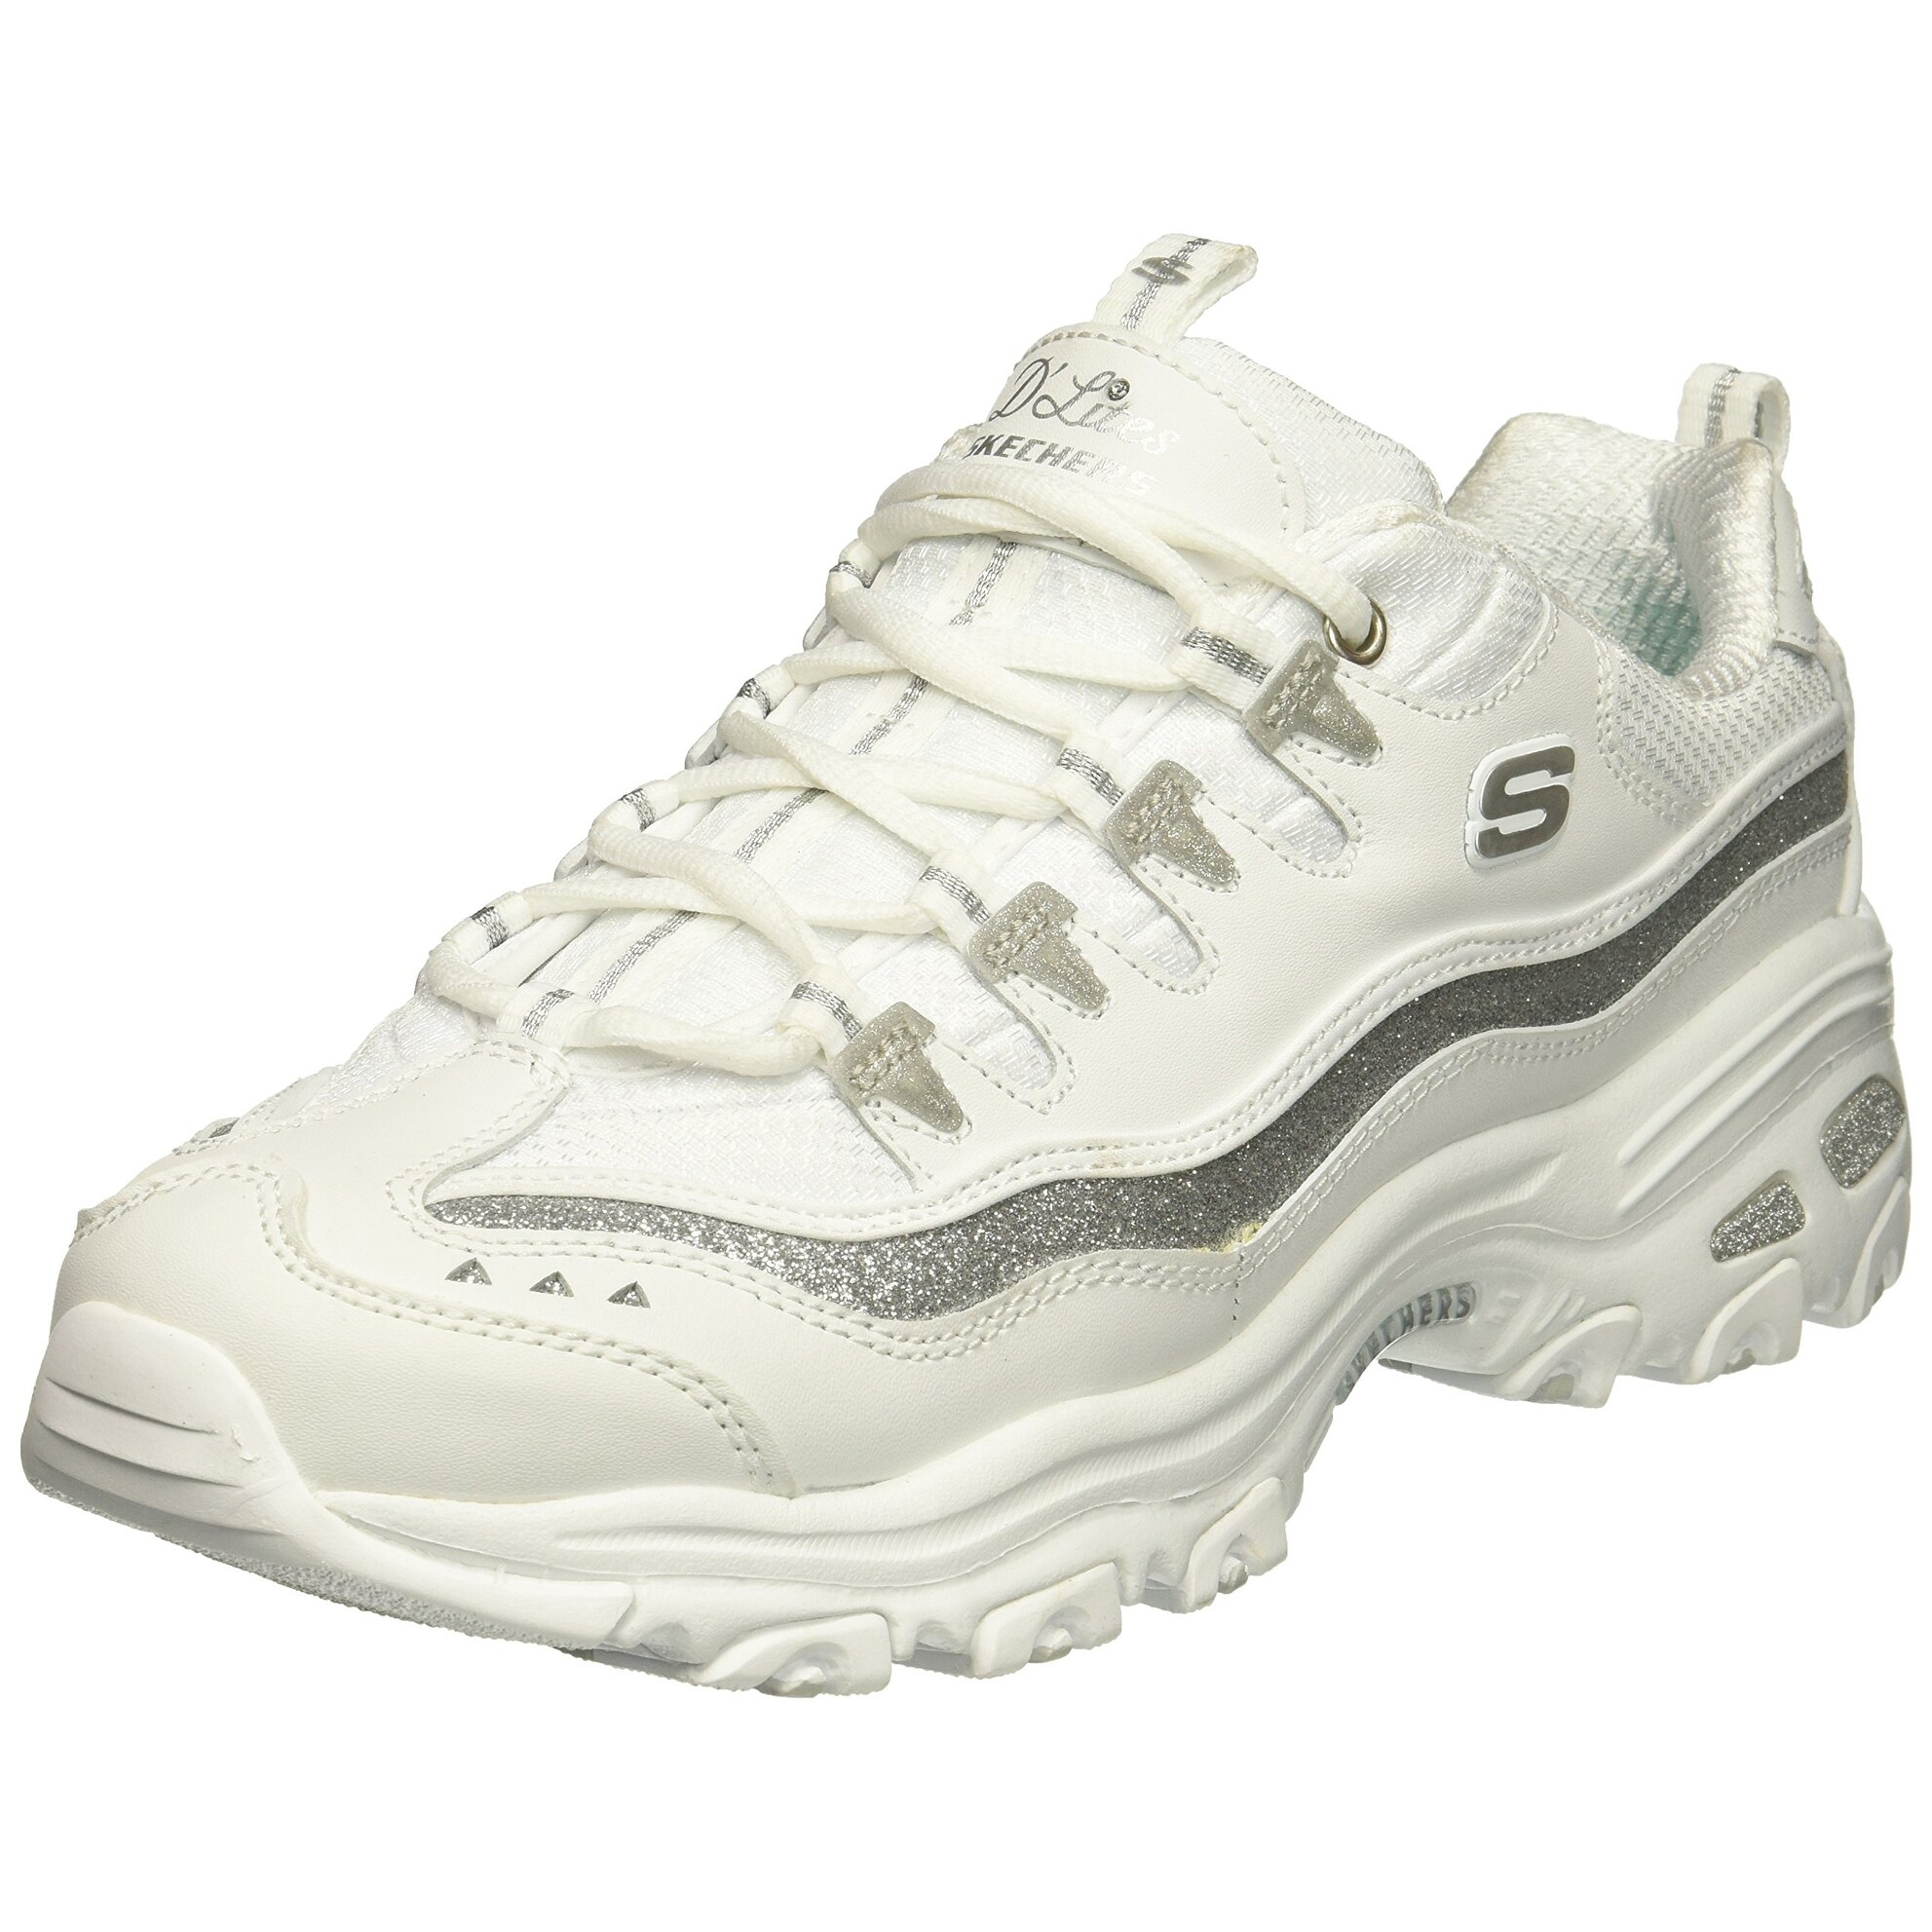 Skechers Sport Women's D'Lites Now and Then Fashion Sneaker, Silver White, 7.5 M US